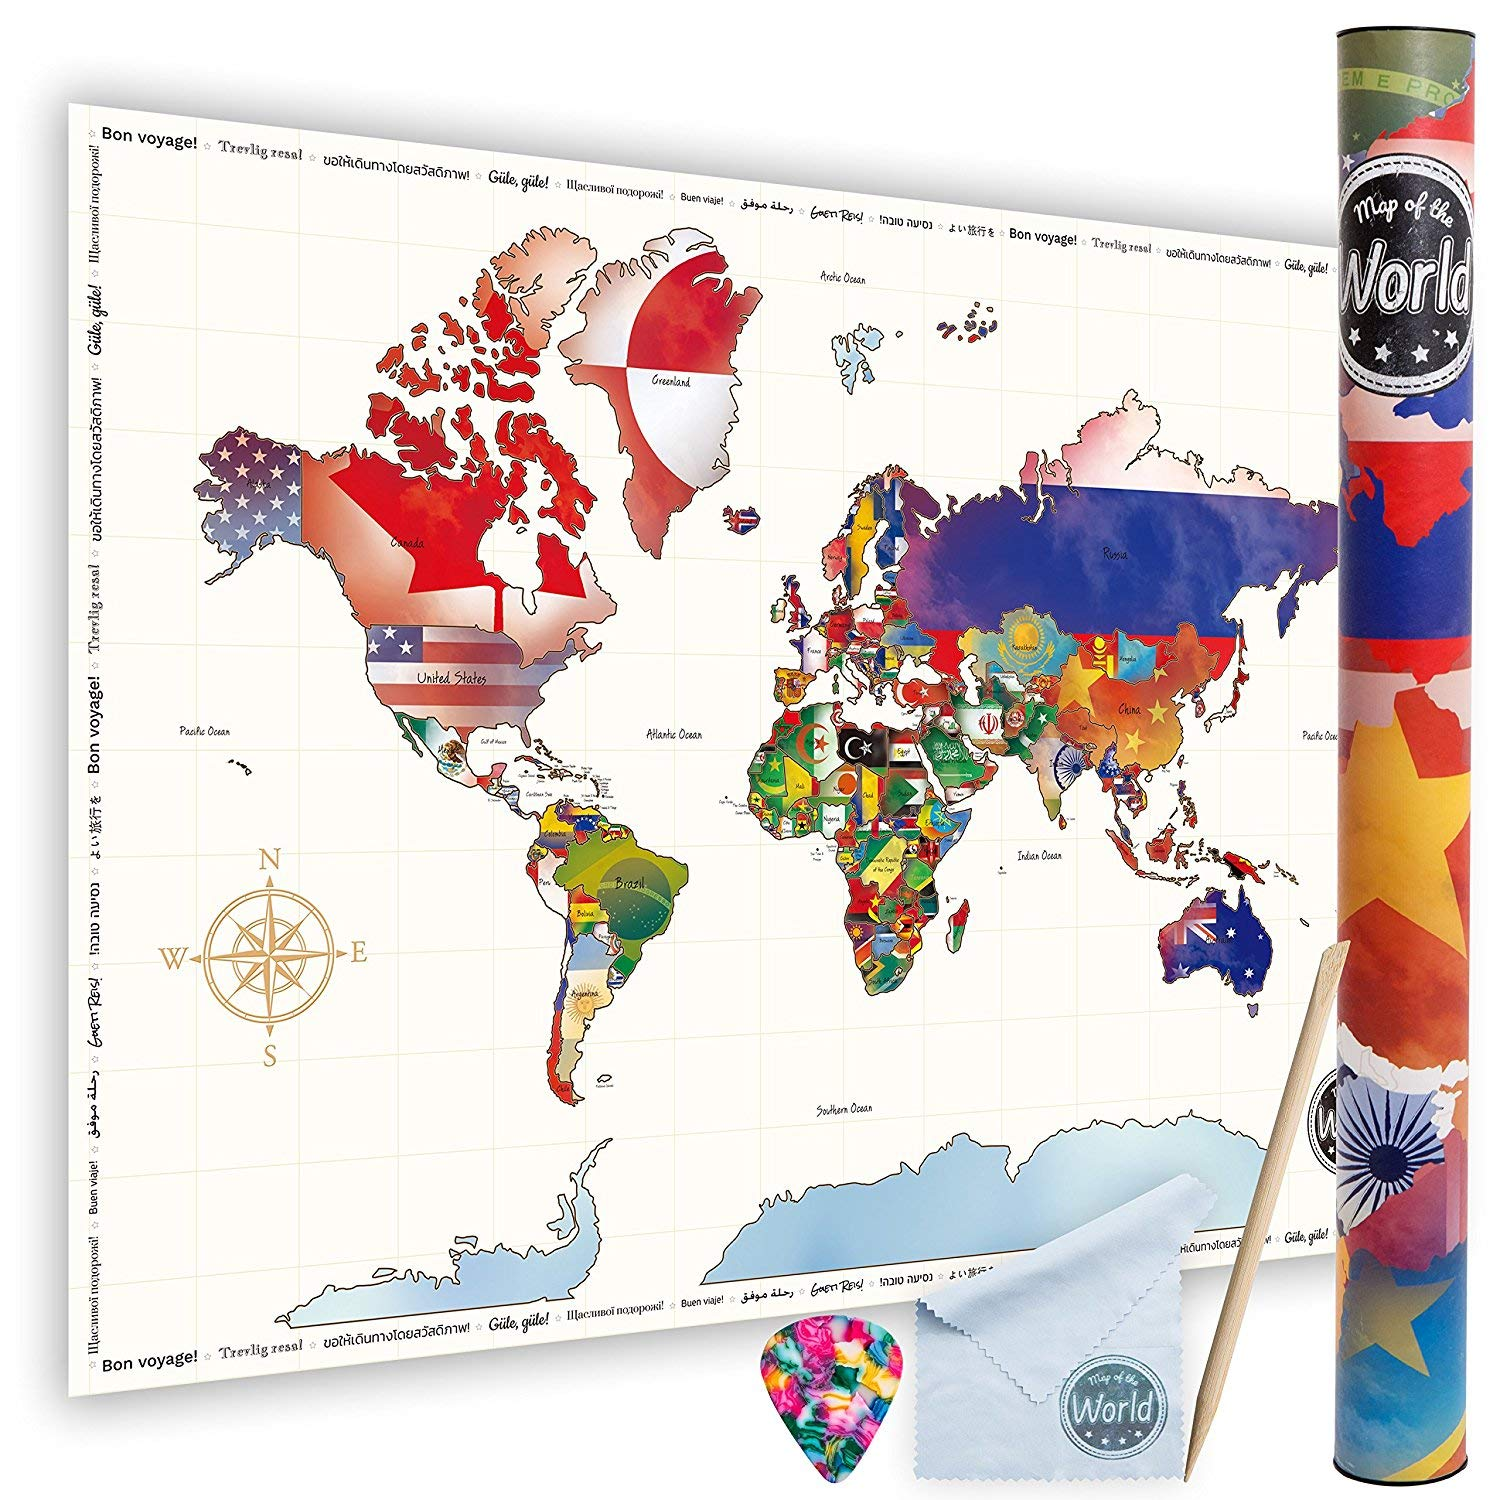 Amazon.com: Scratch-Off World Travel Map Poster - Large World Map ...